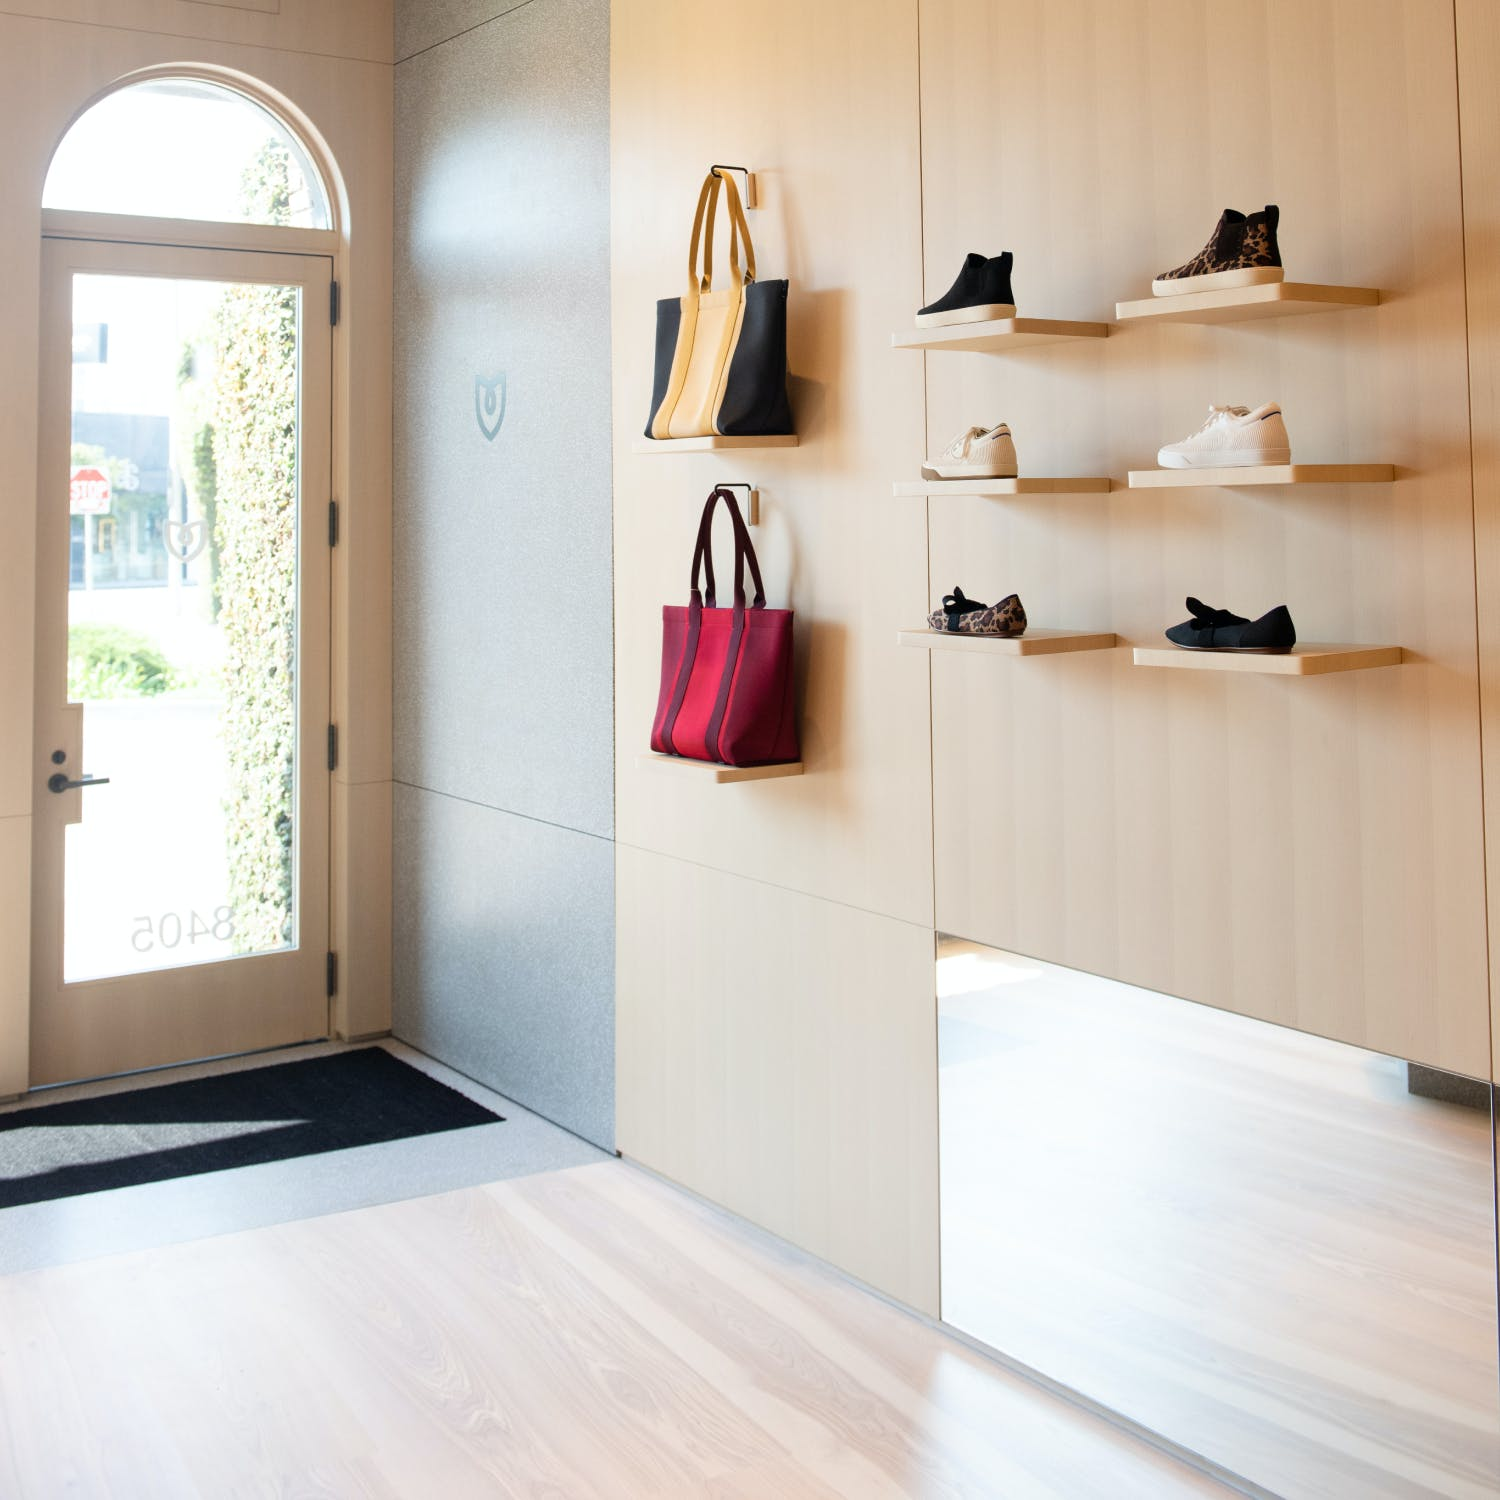 The inside of the Melrose store with bags and shoes displayed.